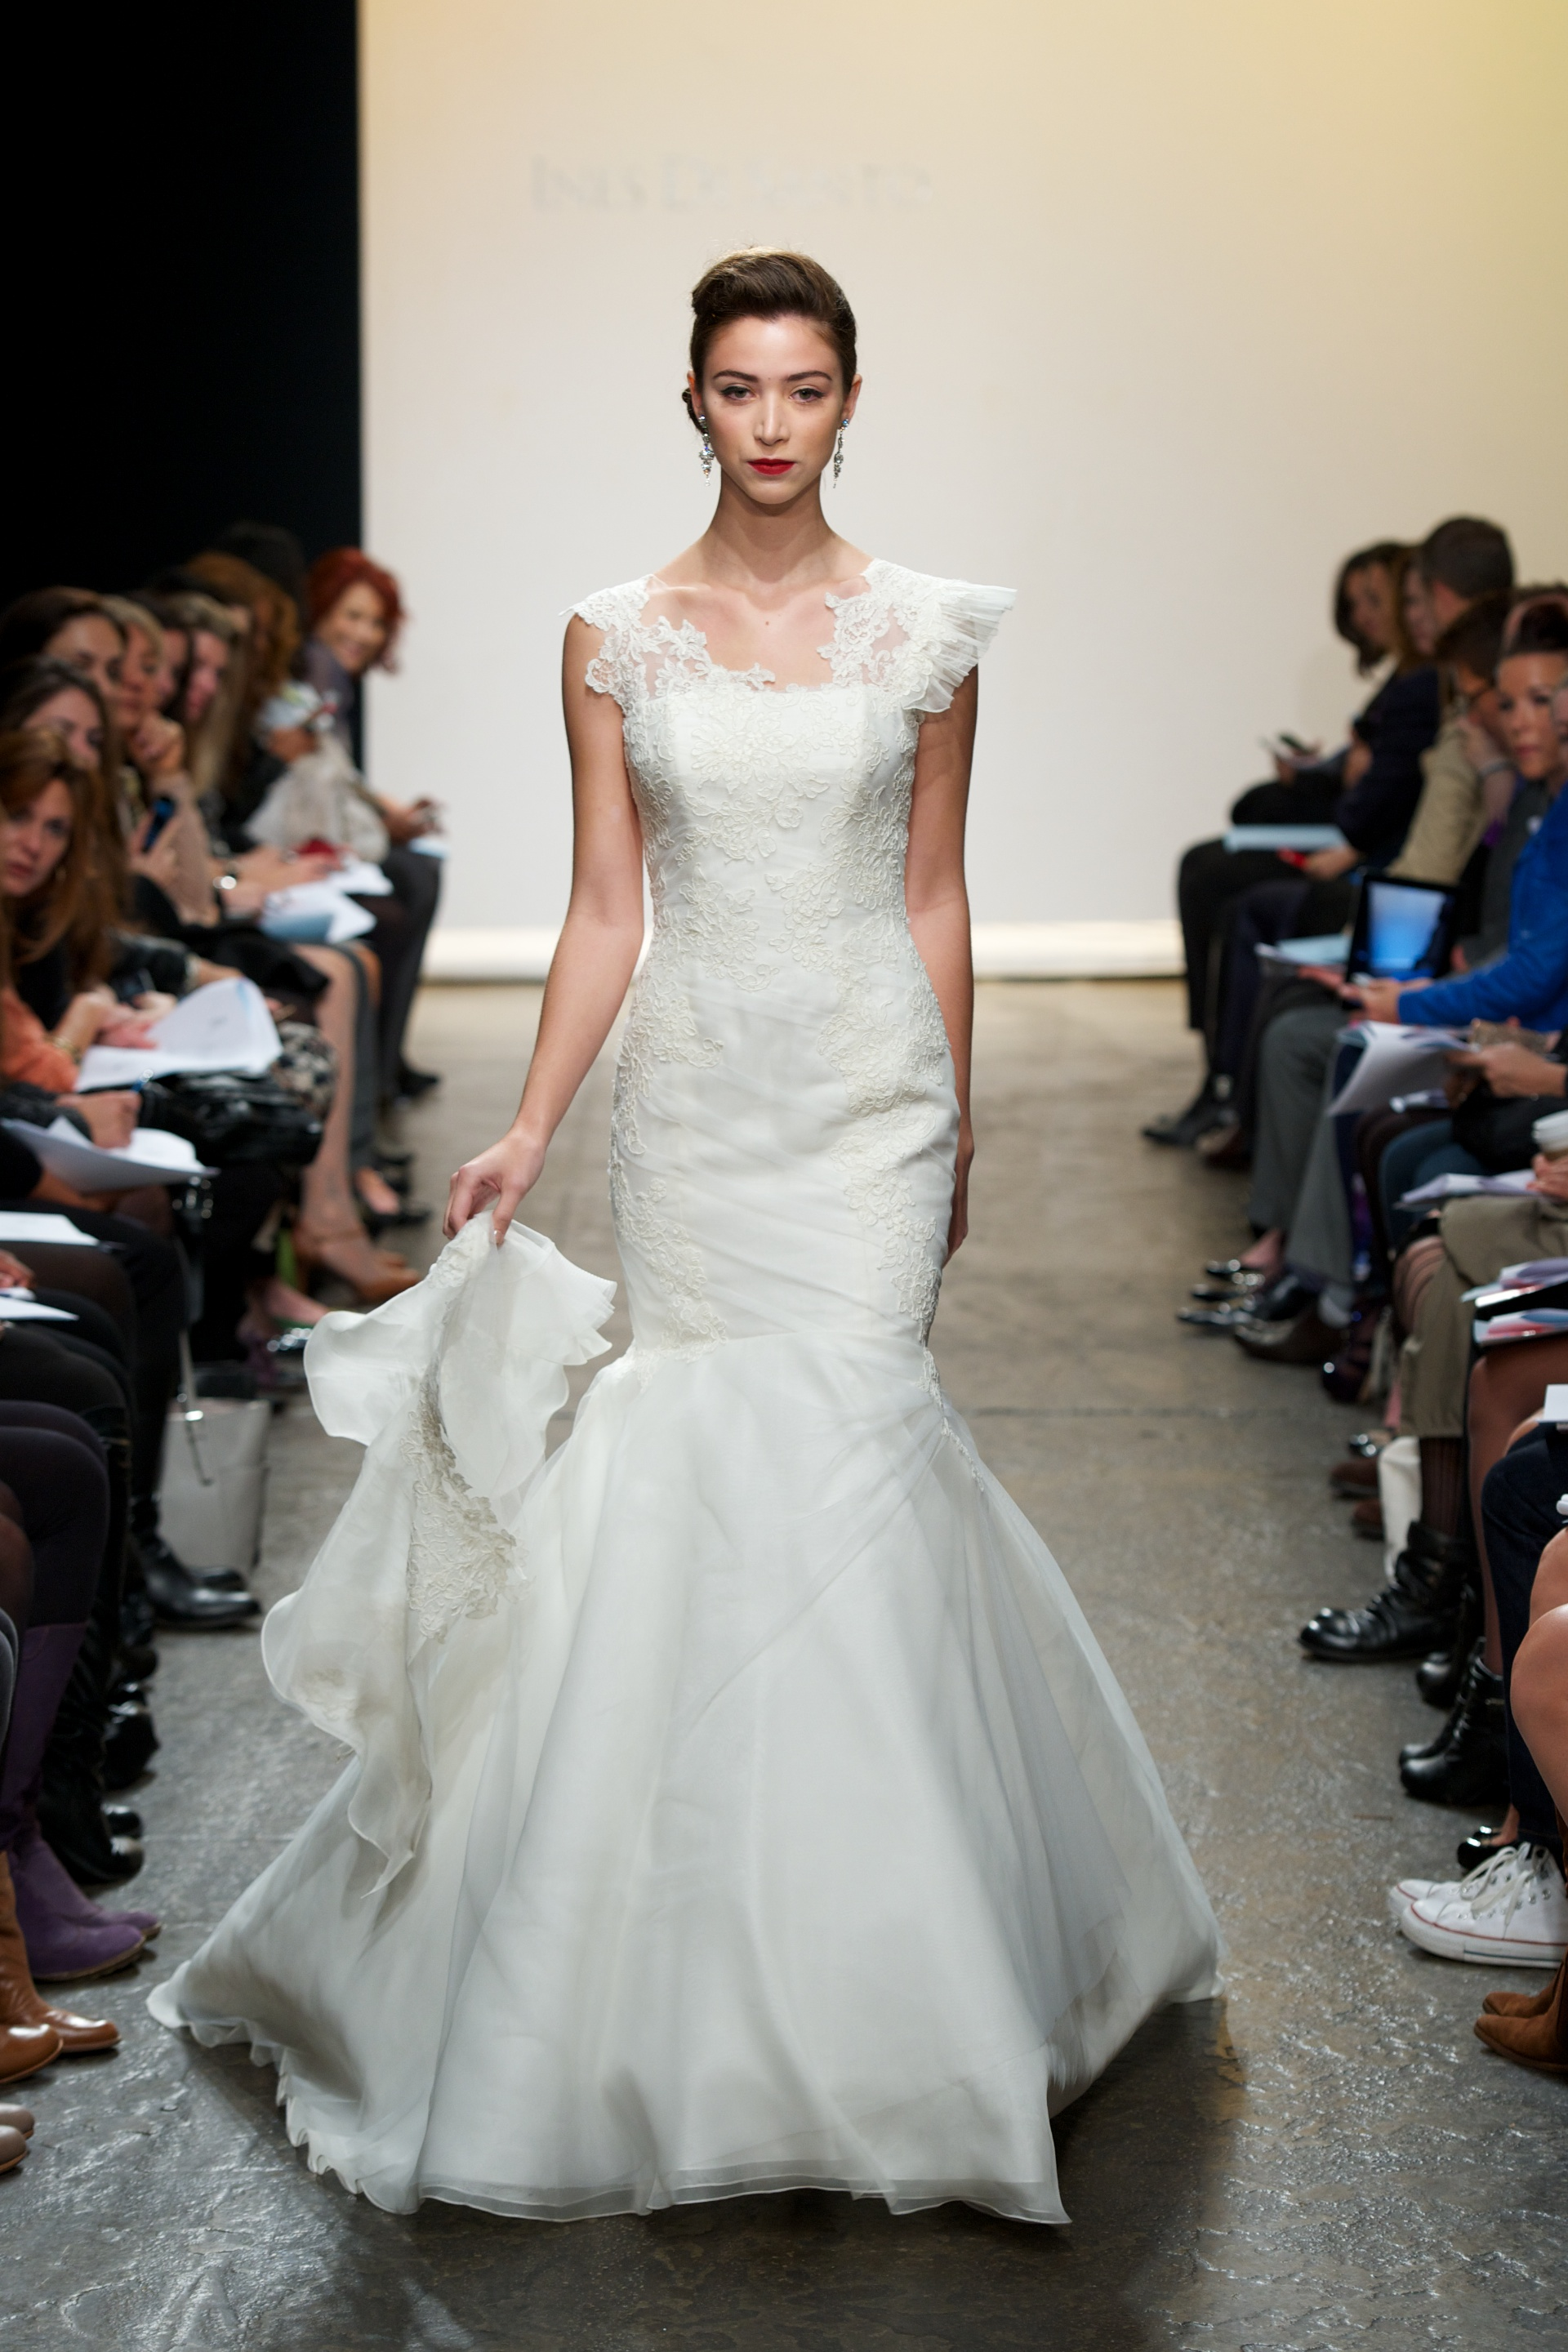 2013 wedding dress by ines di santo rialto for Ines di santo wedding dress